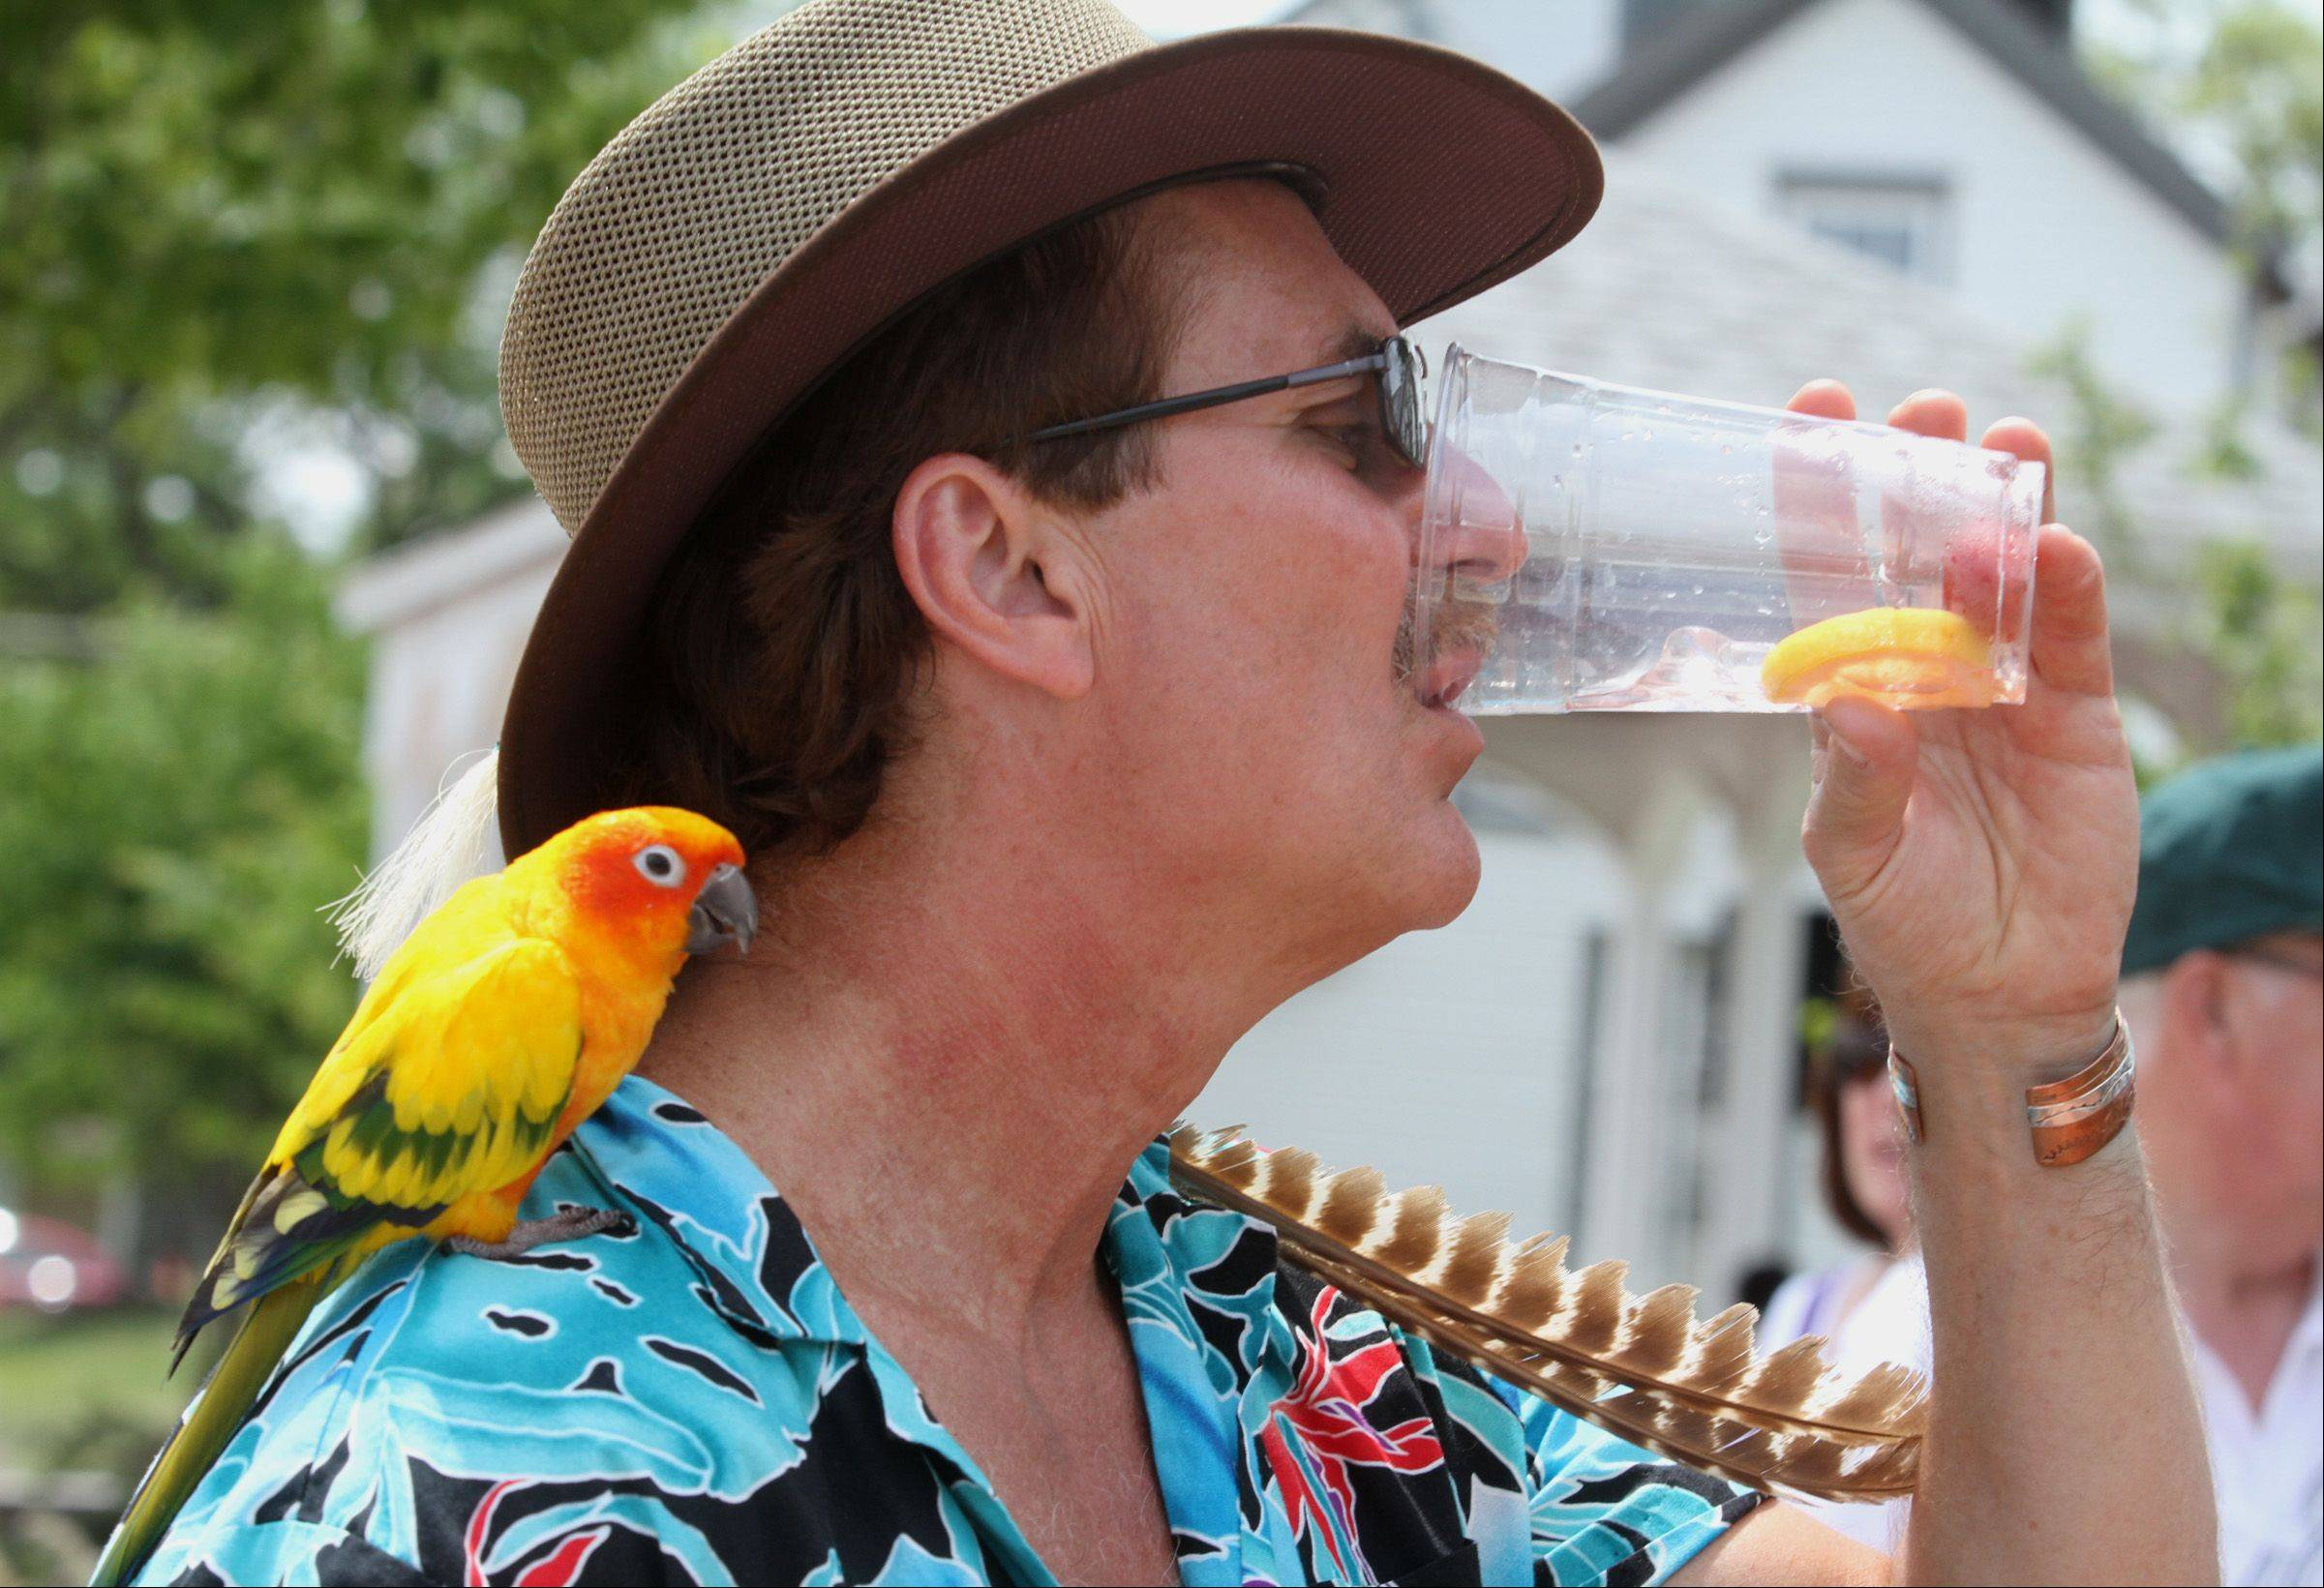 Ken Gaborek of Arlington Heights cools off with a glass of lemonade with his 3-year-old Sun Conure, Reno, at the Long Grove Strawberry Festival on Saturday. The festival continues 10 a.m. to 6 p.m. Sunday.